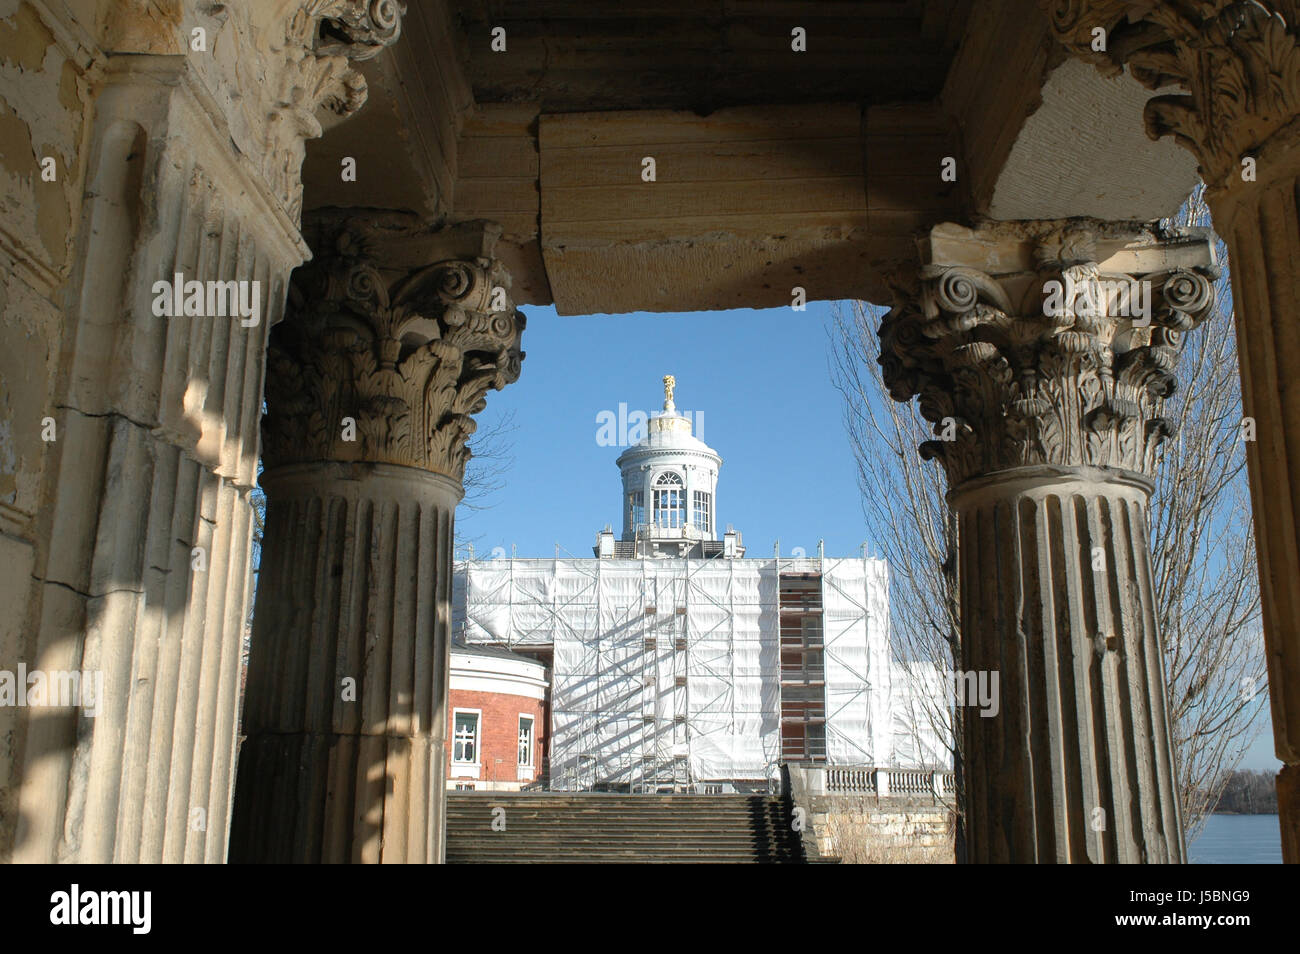 Marble Palace In Potsdam   Stock Image